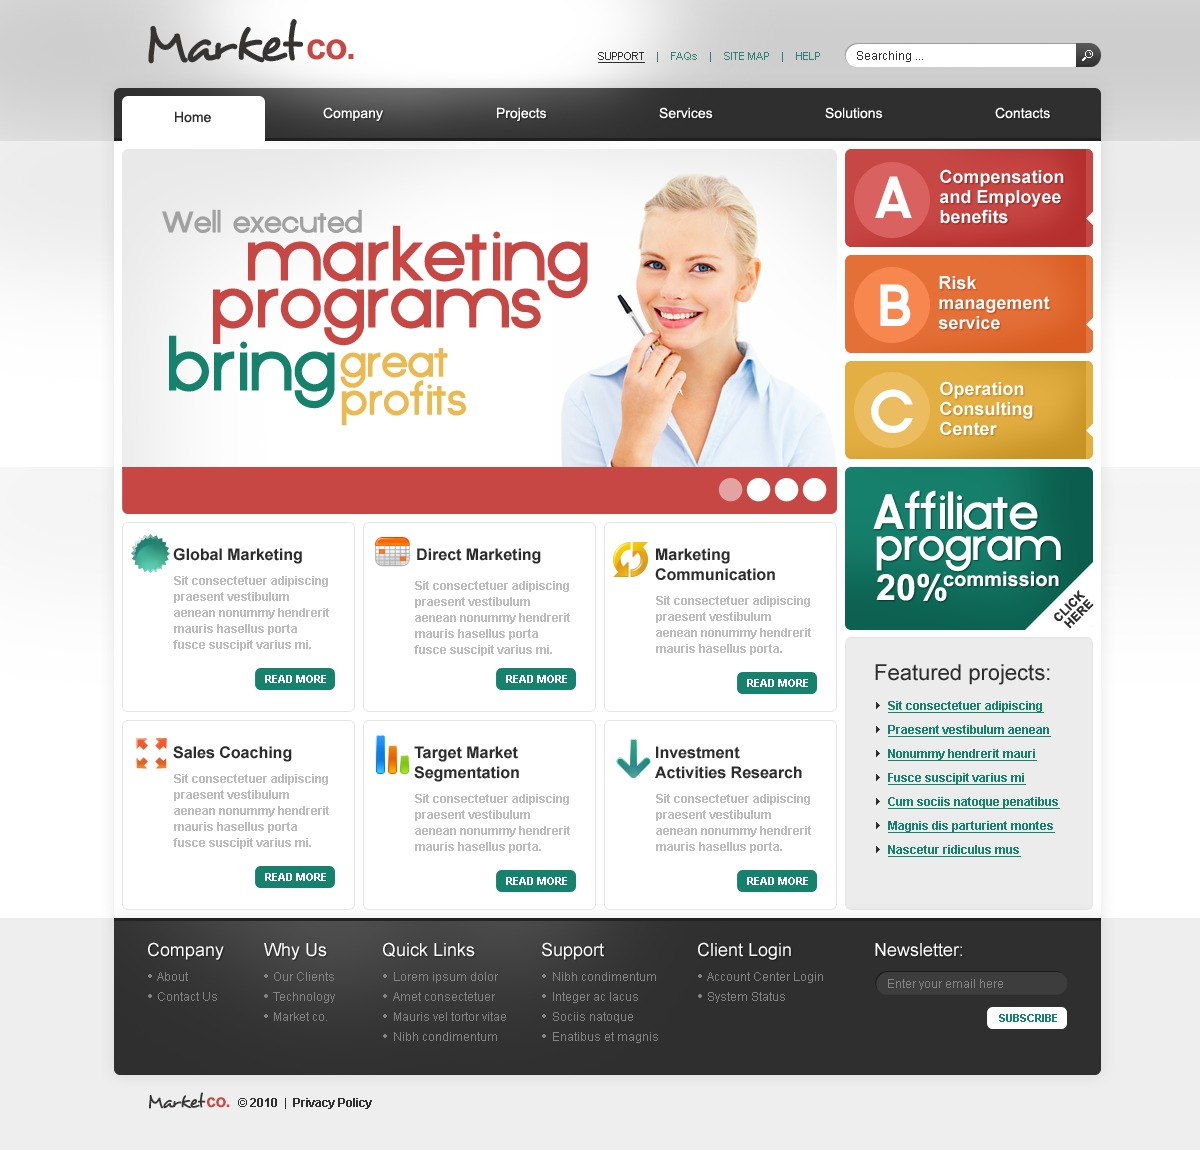 The Market Company PSD Design 54166, one of the best PSD templates of its kind (business, flash 8, wide), also known as market company PSD template, business company PSD template, corporate solutions PSD template, innovations PSD template, contacts PSD template, service PSD template, support PSD template, information dealer PSD template, stocks PSD template, team PSD template, success PSD template, money PSD template, marketing PSD template, director PSD template, manager PSD template, analytics PSD template, planning PSD template, limited PSD template, office PSD template, sales and related with market company, business company, corporate solutions, innovations, contacts, service, support, information dealer, stocks, team, success, money, marketing, director, manager, analytics, planning, limited, office, sales, etc.